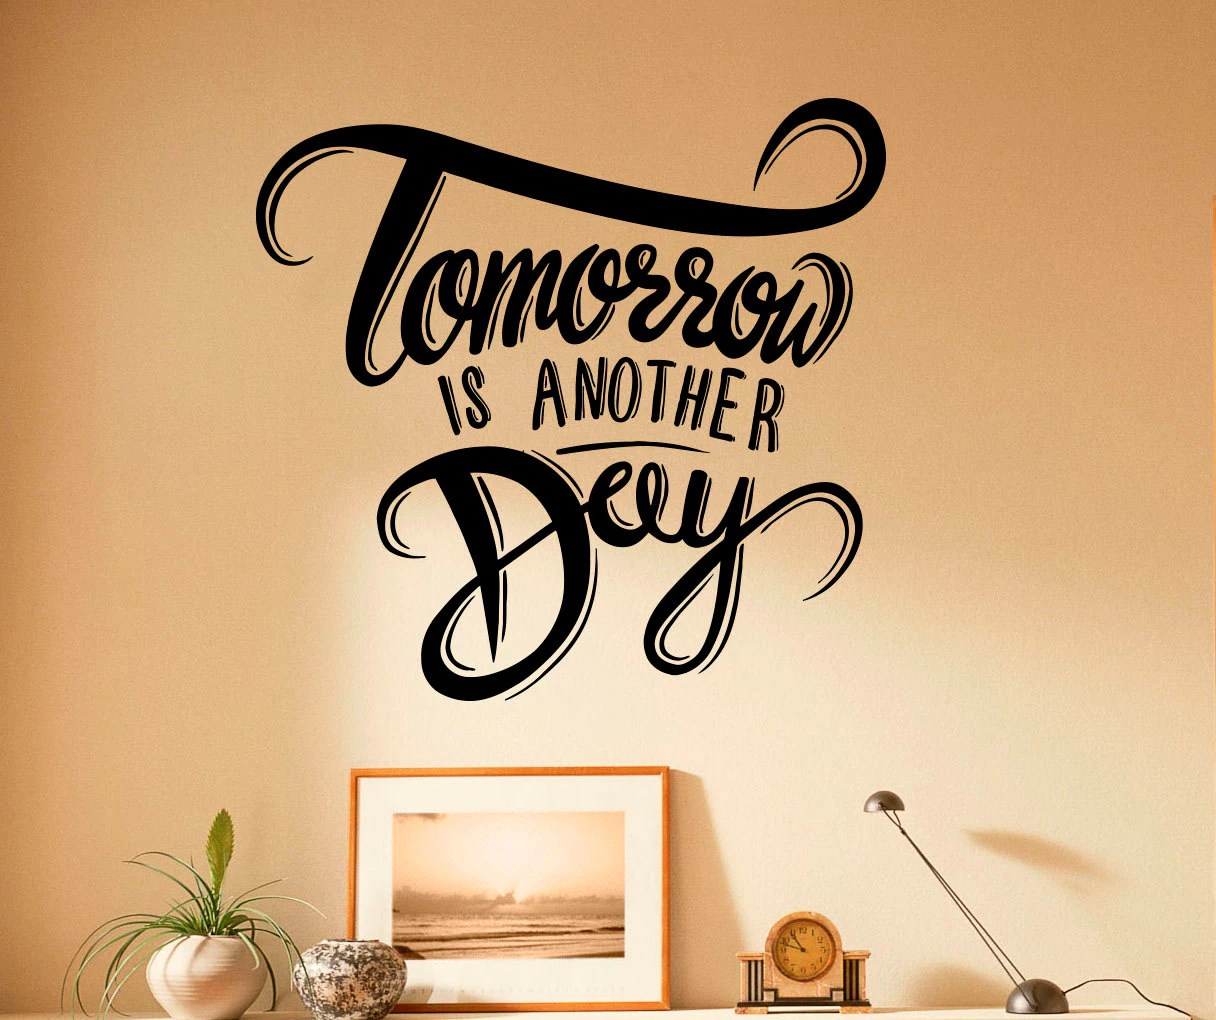 Tomorrow Is Another Day Motivation Quote Wall Decal Vinyl | Etsy